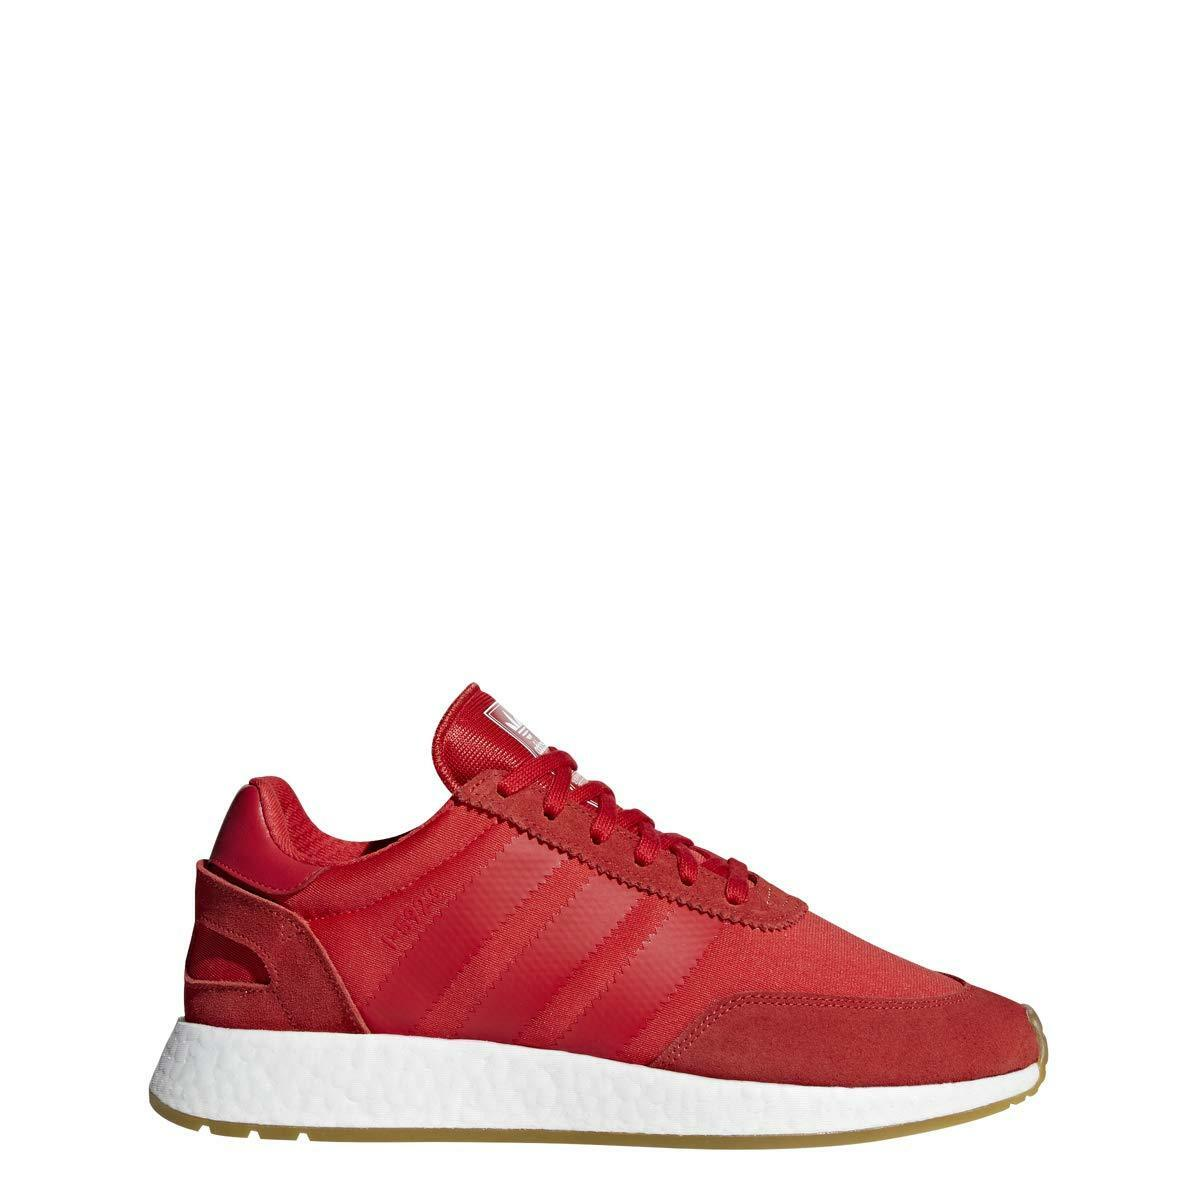 Adidas I-5923 Runner Casual shoes Mens D97346